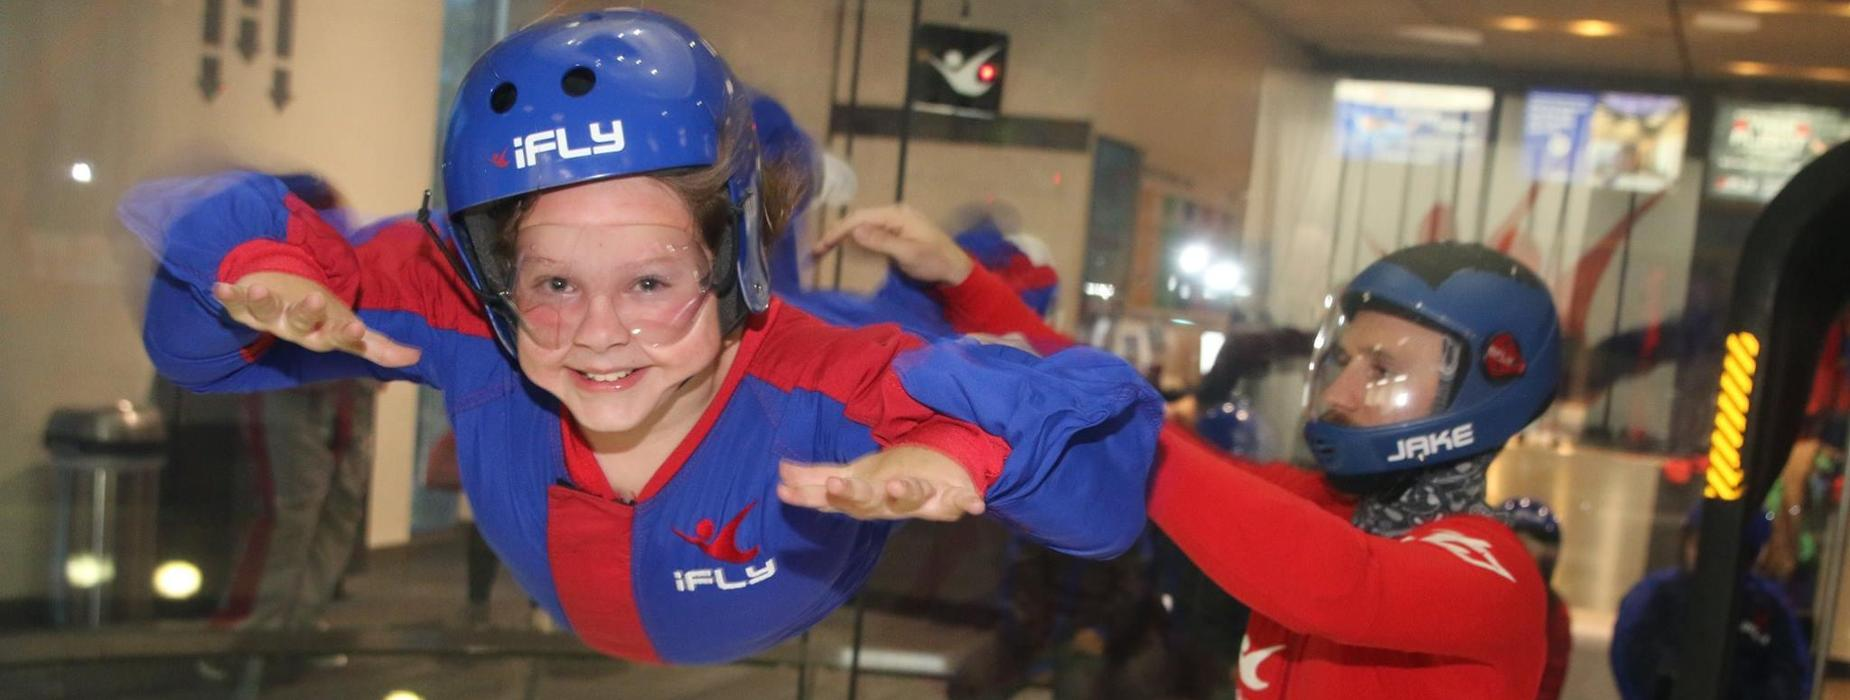 Voyager Project students explores skydiving